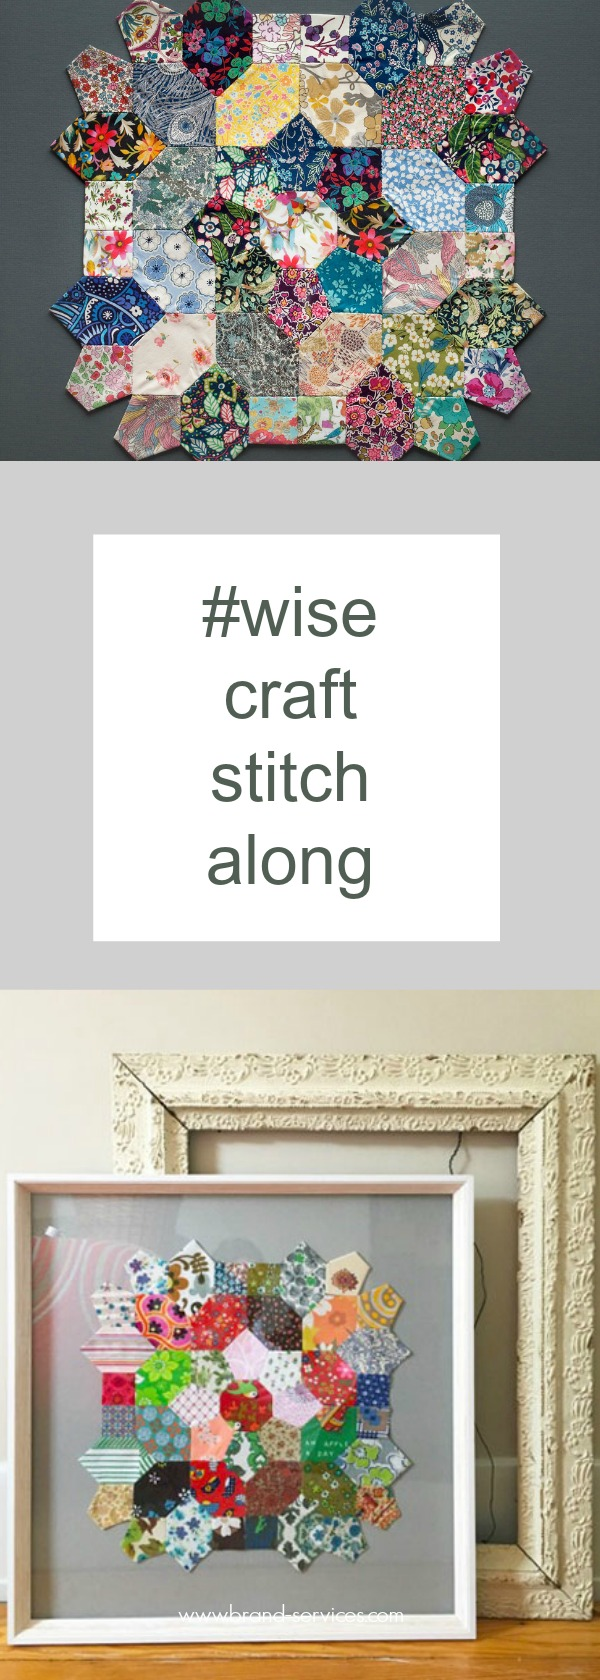 #wisecraftstitchalong from Wise Craft Quilts book